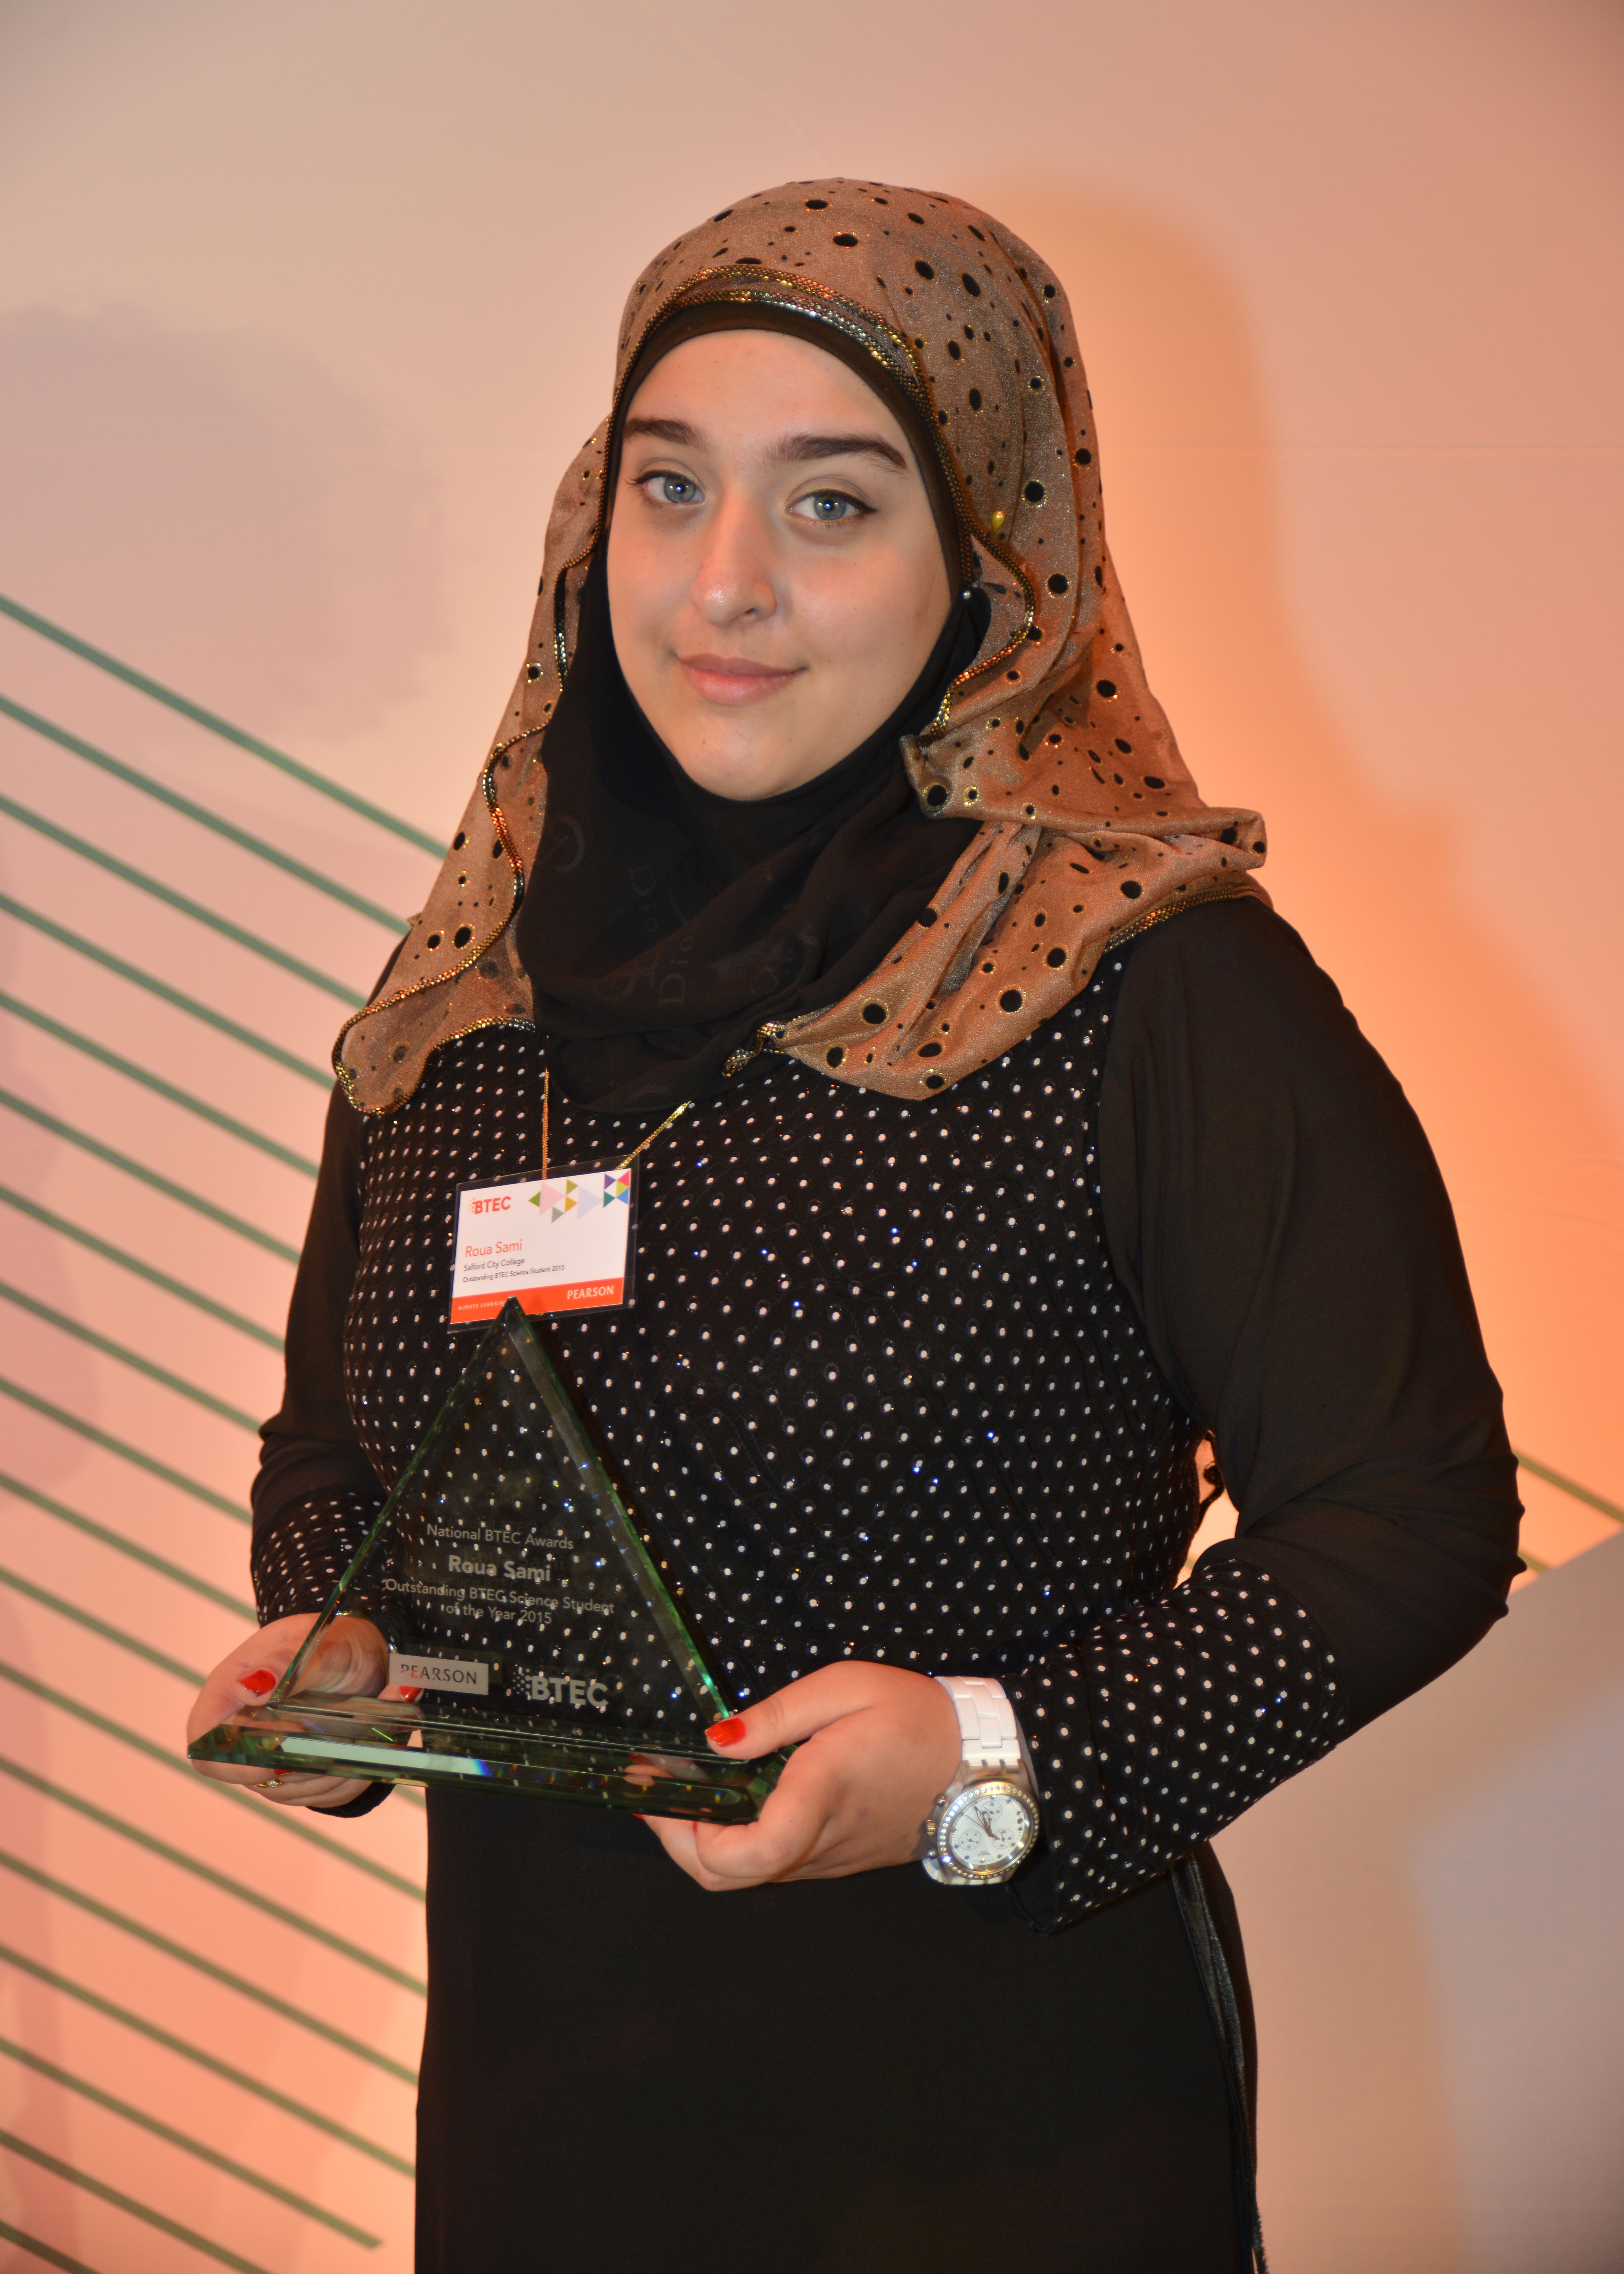 Roua Sami, aged 19, Salford City College